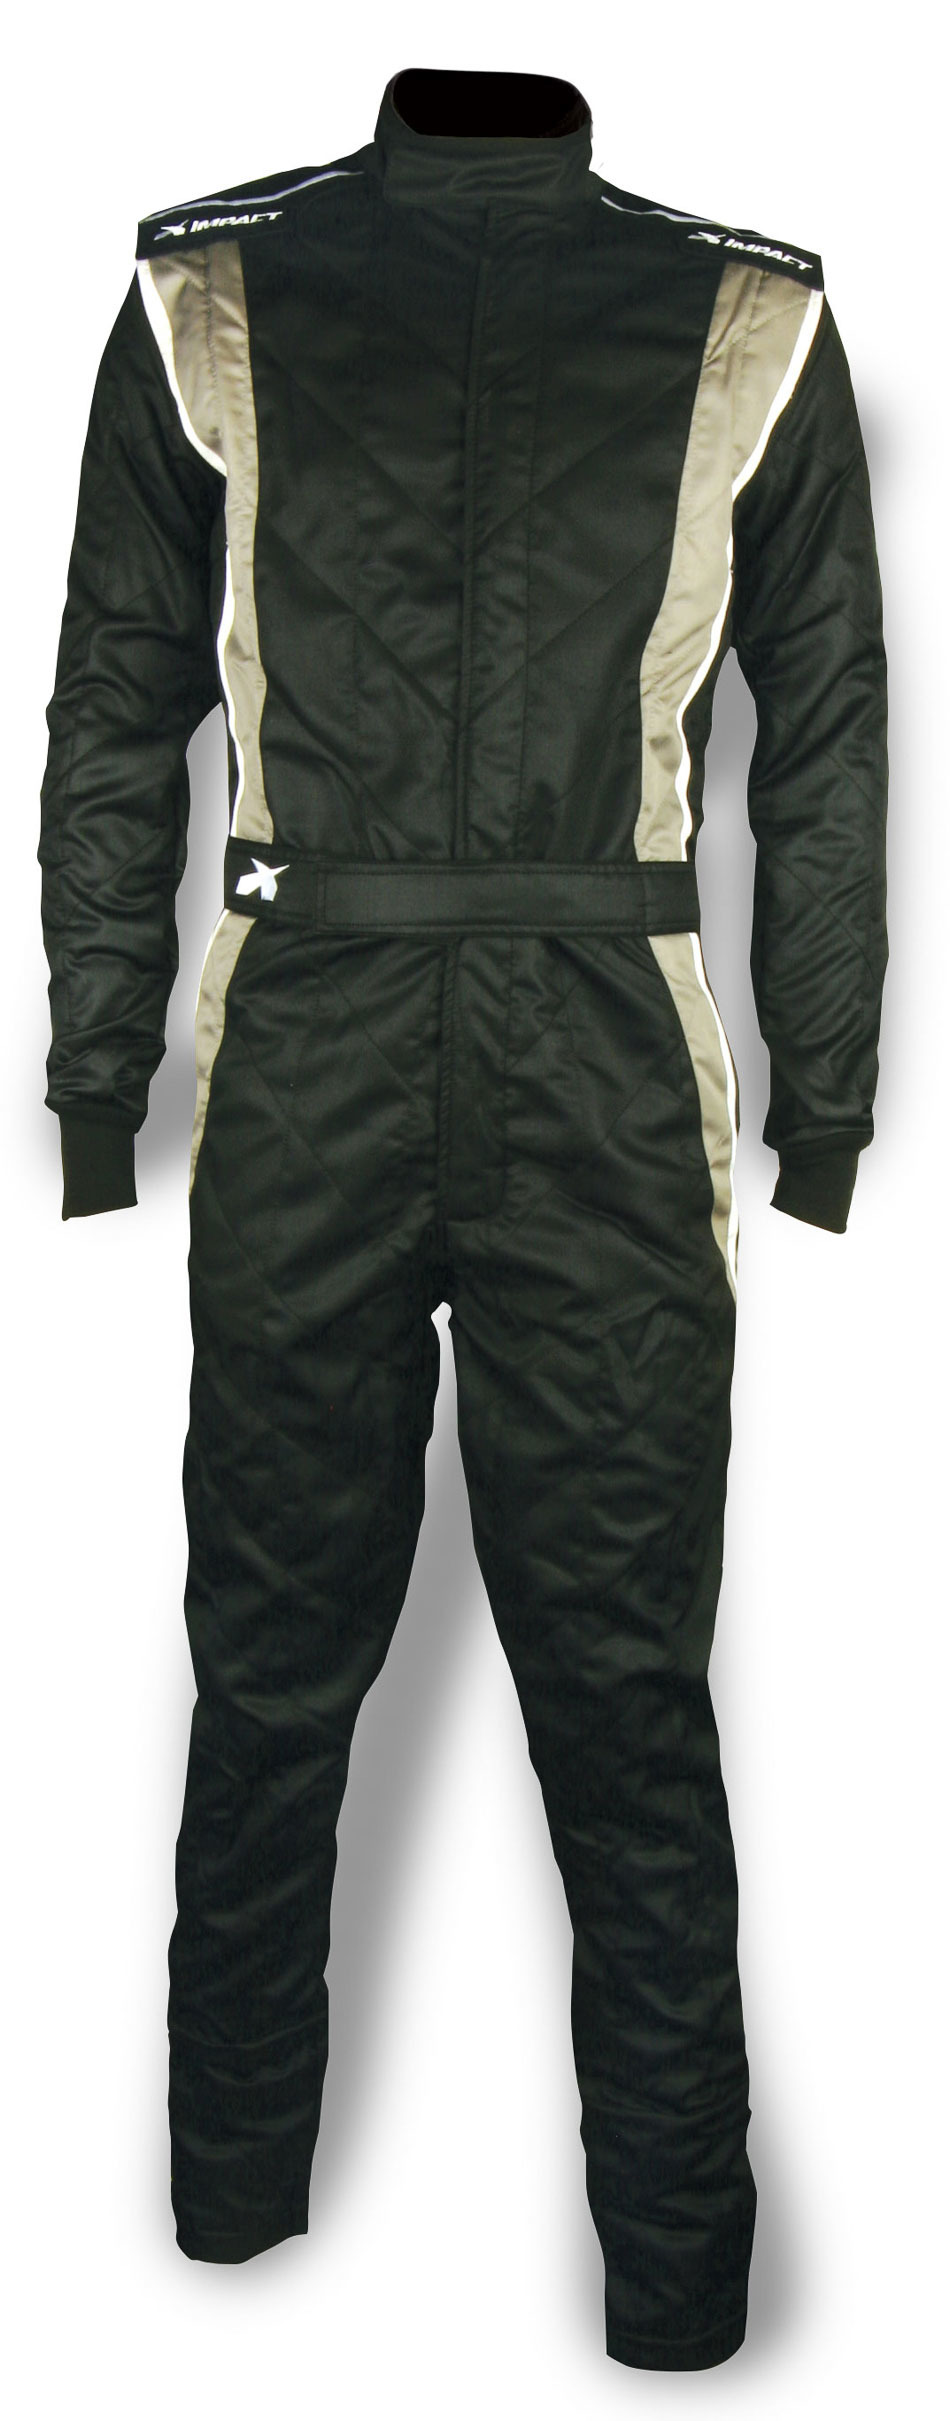 Impact Racing 25215413 Suit, Phenom DS, Driving, 1 Piece, SFI-3.2A/5, FIA Approved, Double Layer, Nomex, Black/Gray, Medium, Each